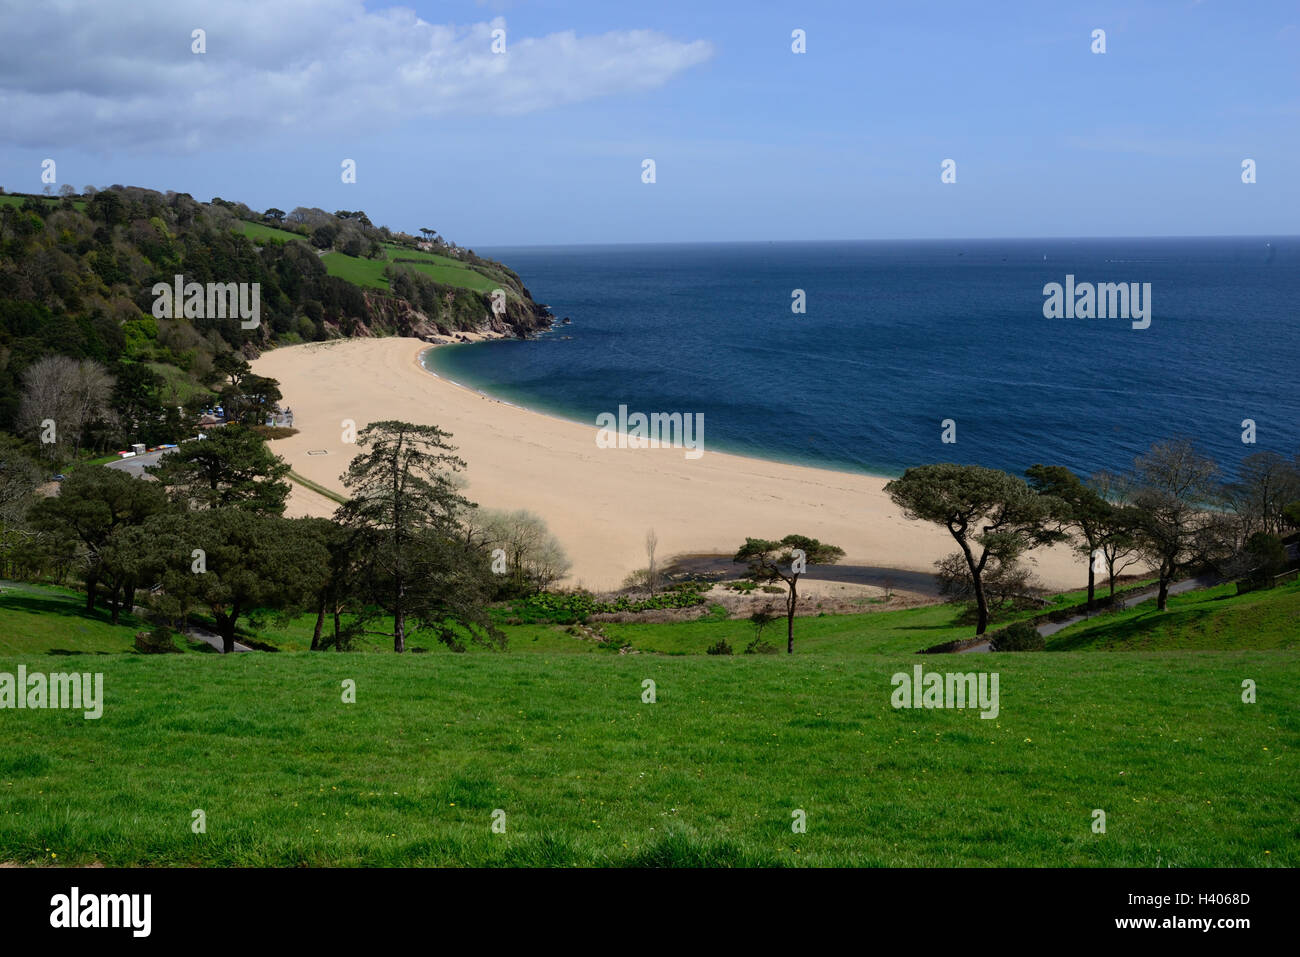 The beach at Blackpool Sands, South Devon. - Stock Image